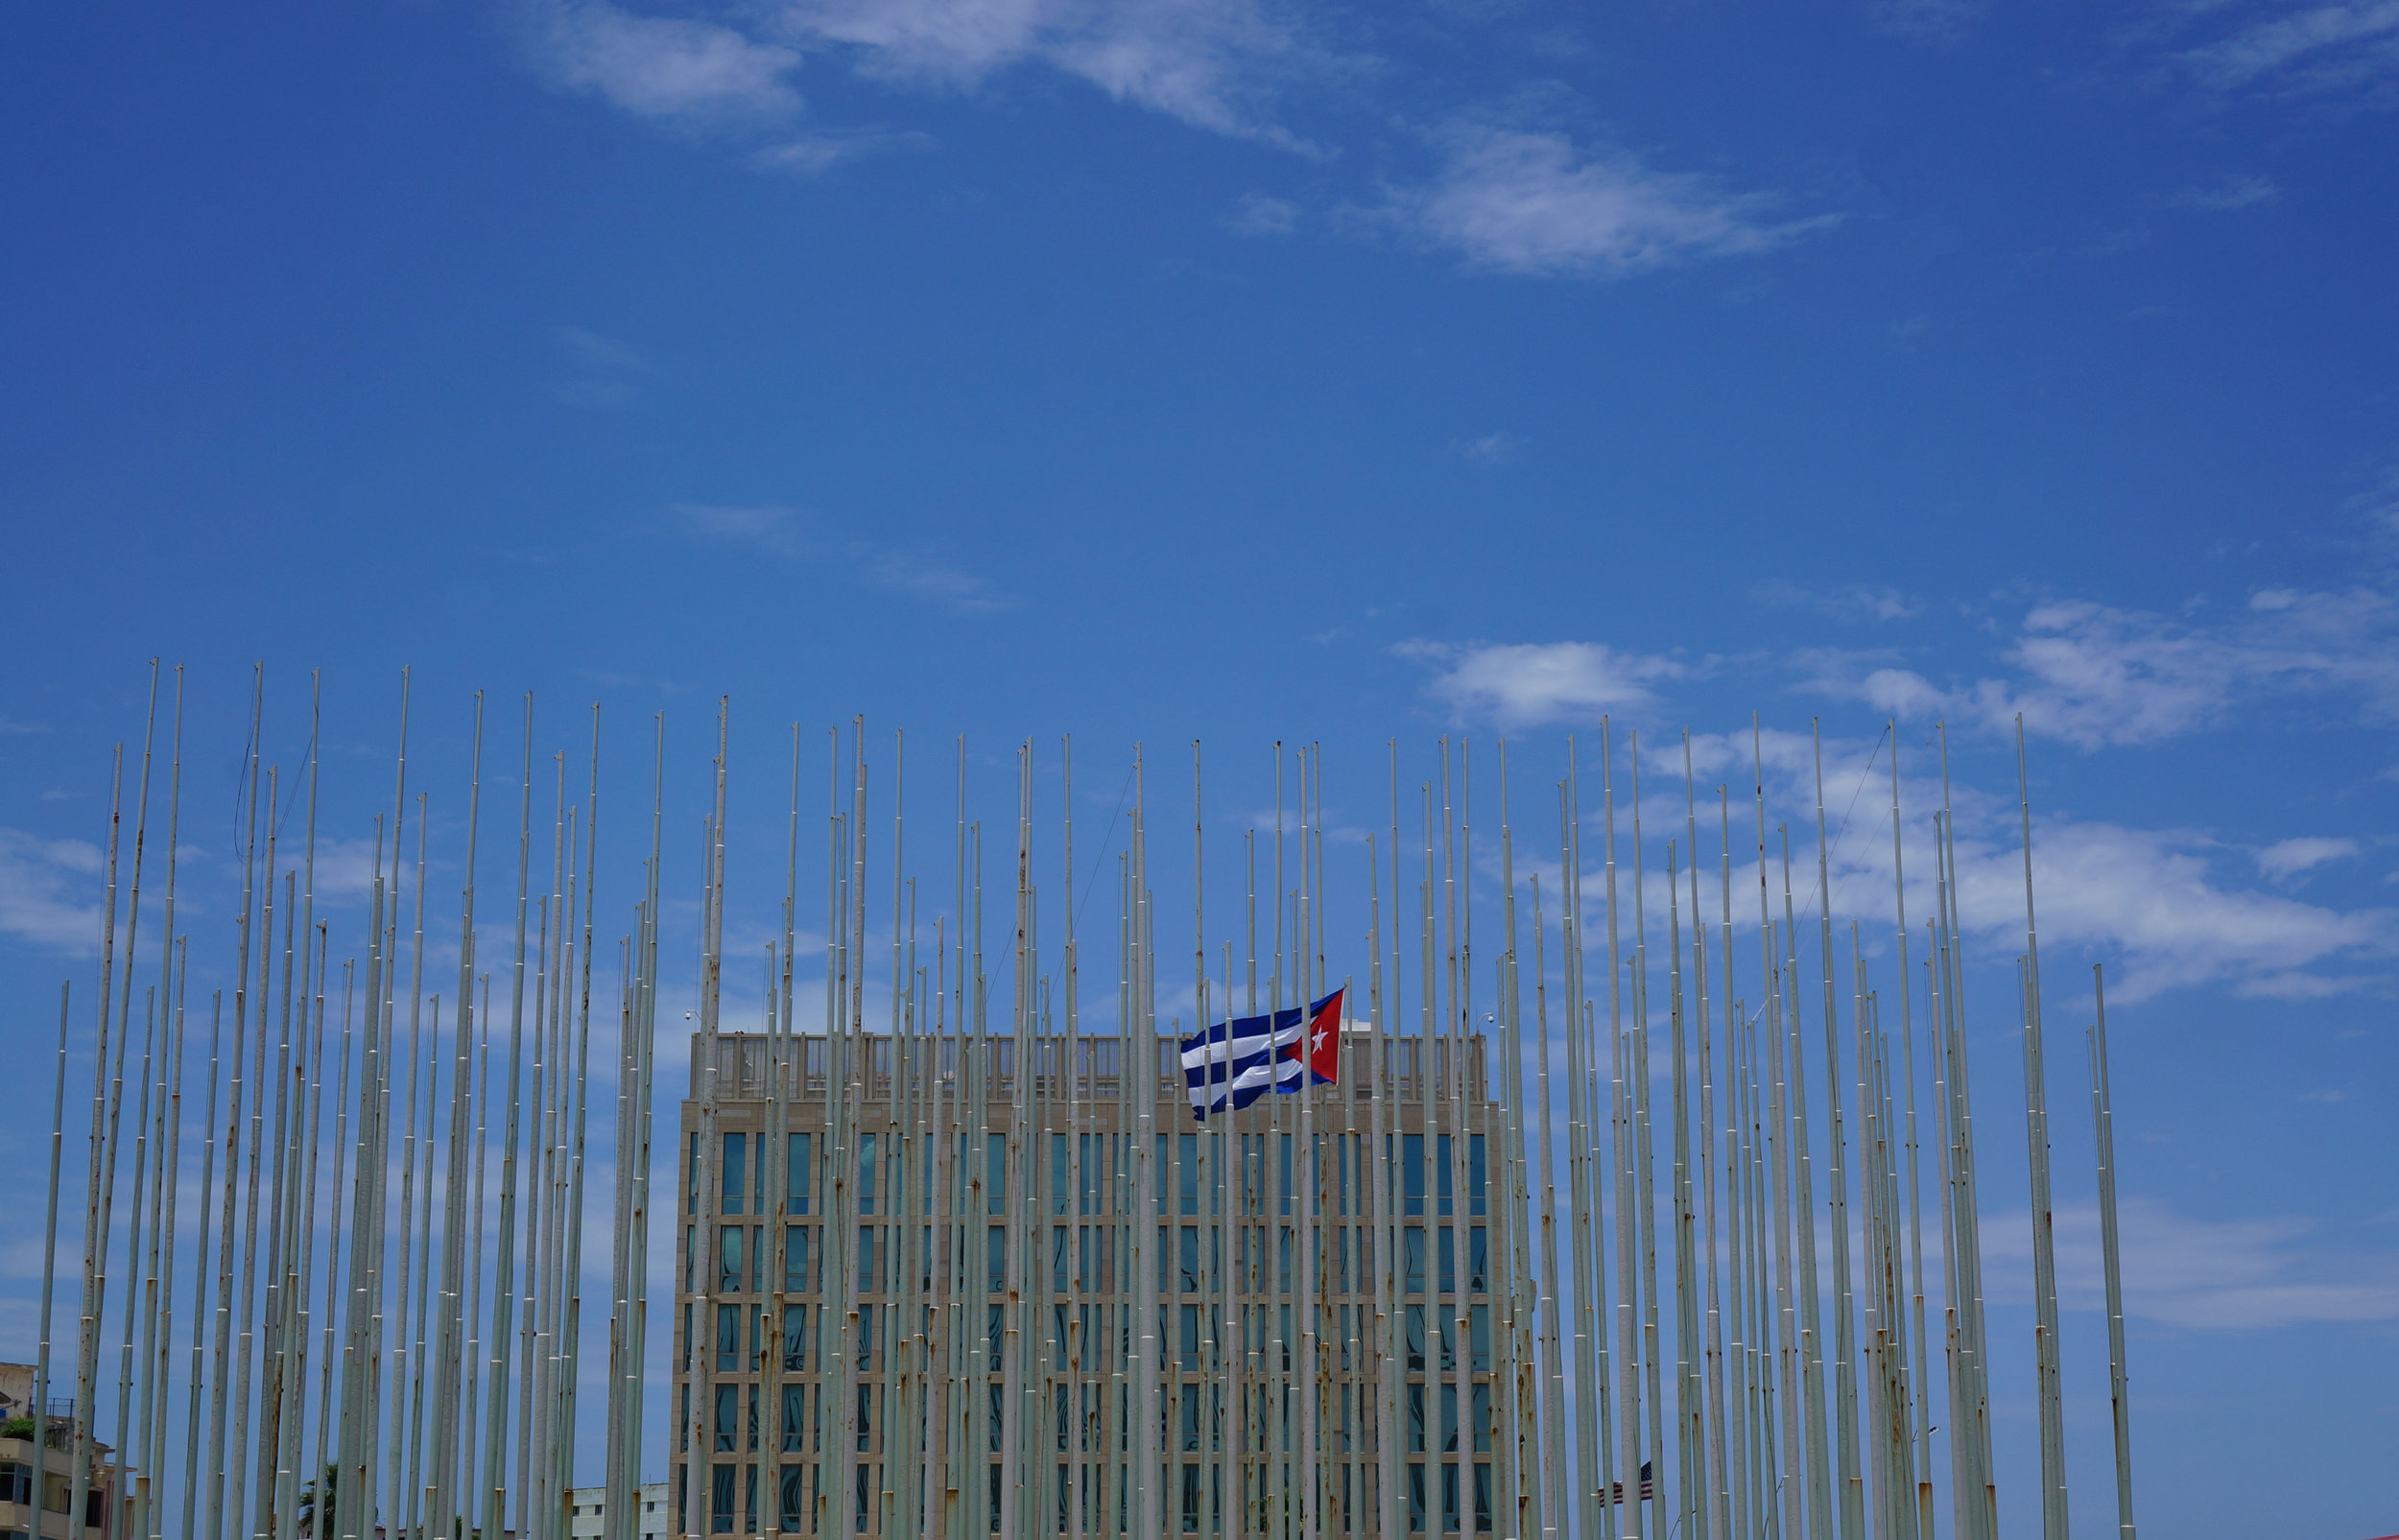 The US Embassy with the Wall of Flags standing in its foreground.